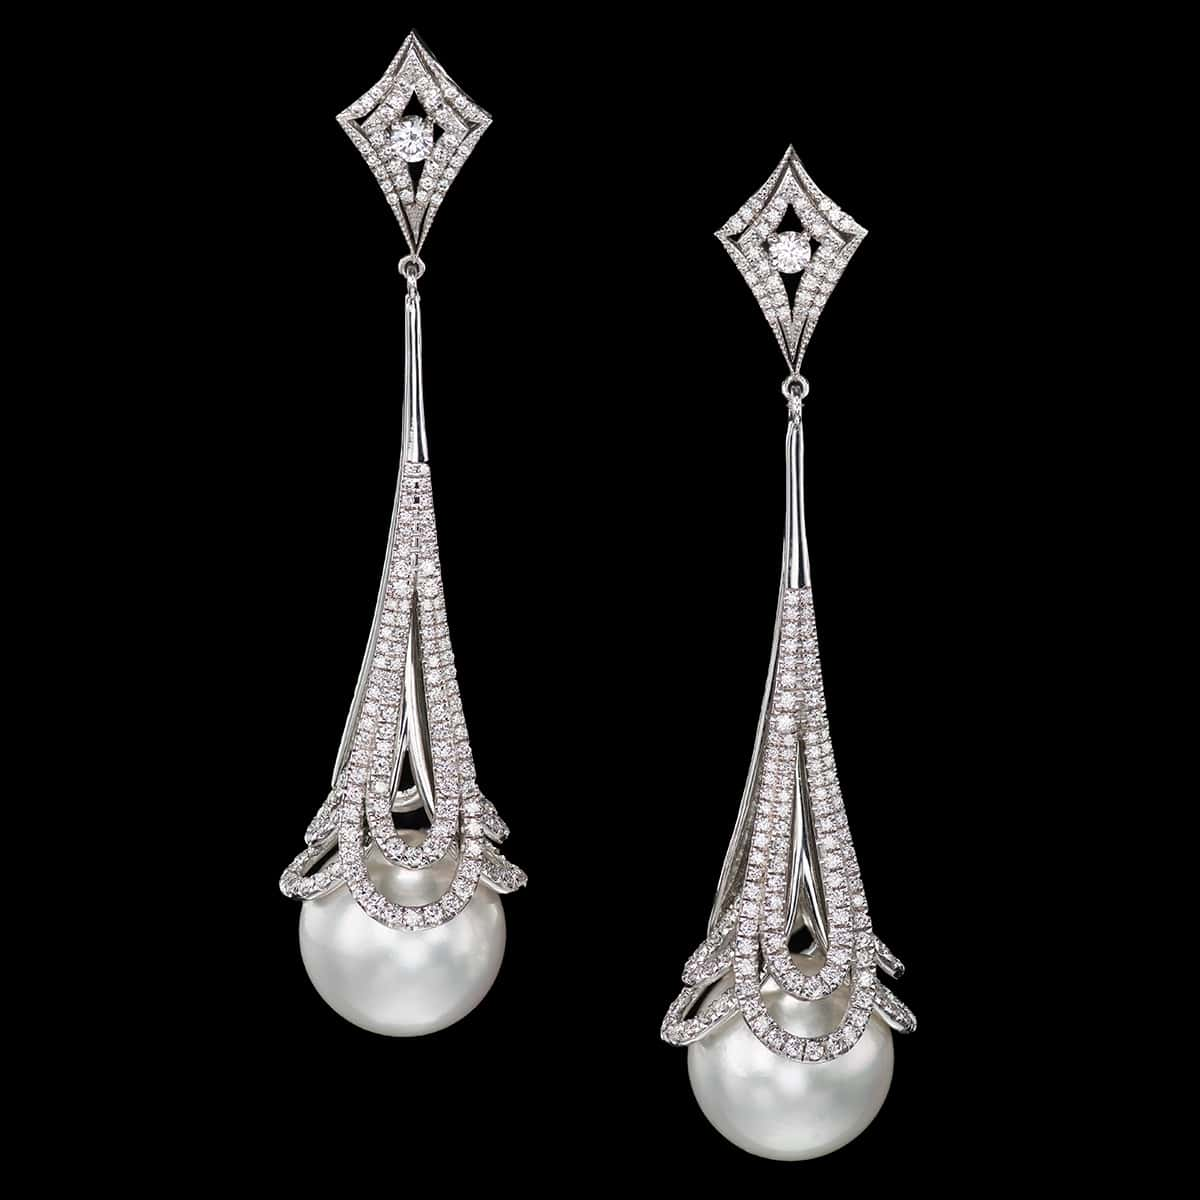 Pearl Earrings - Pearls in Lace - Couture Jewelry Portfolio